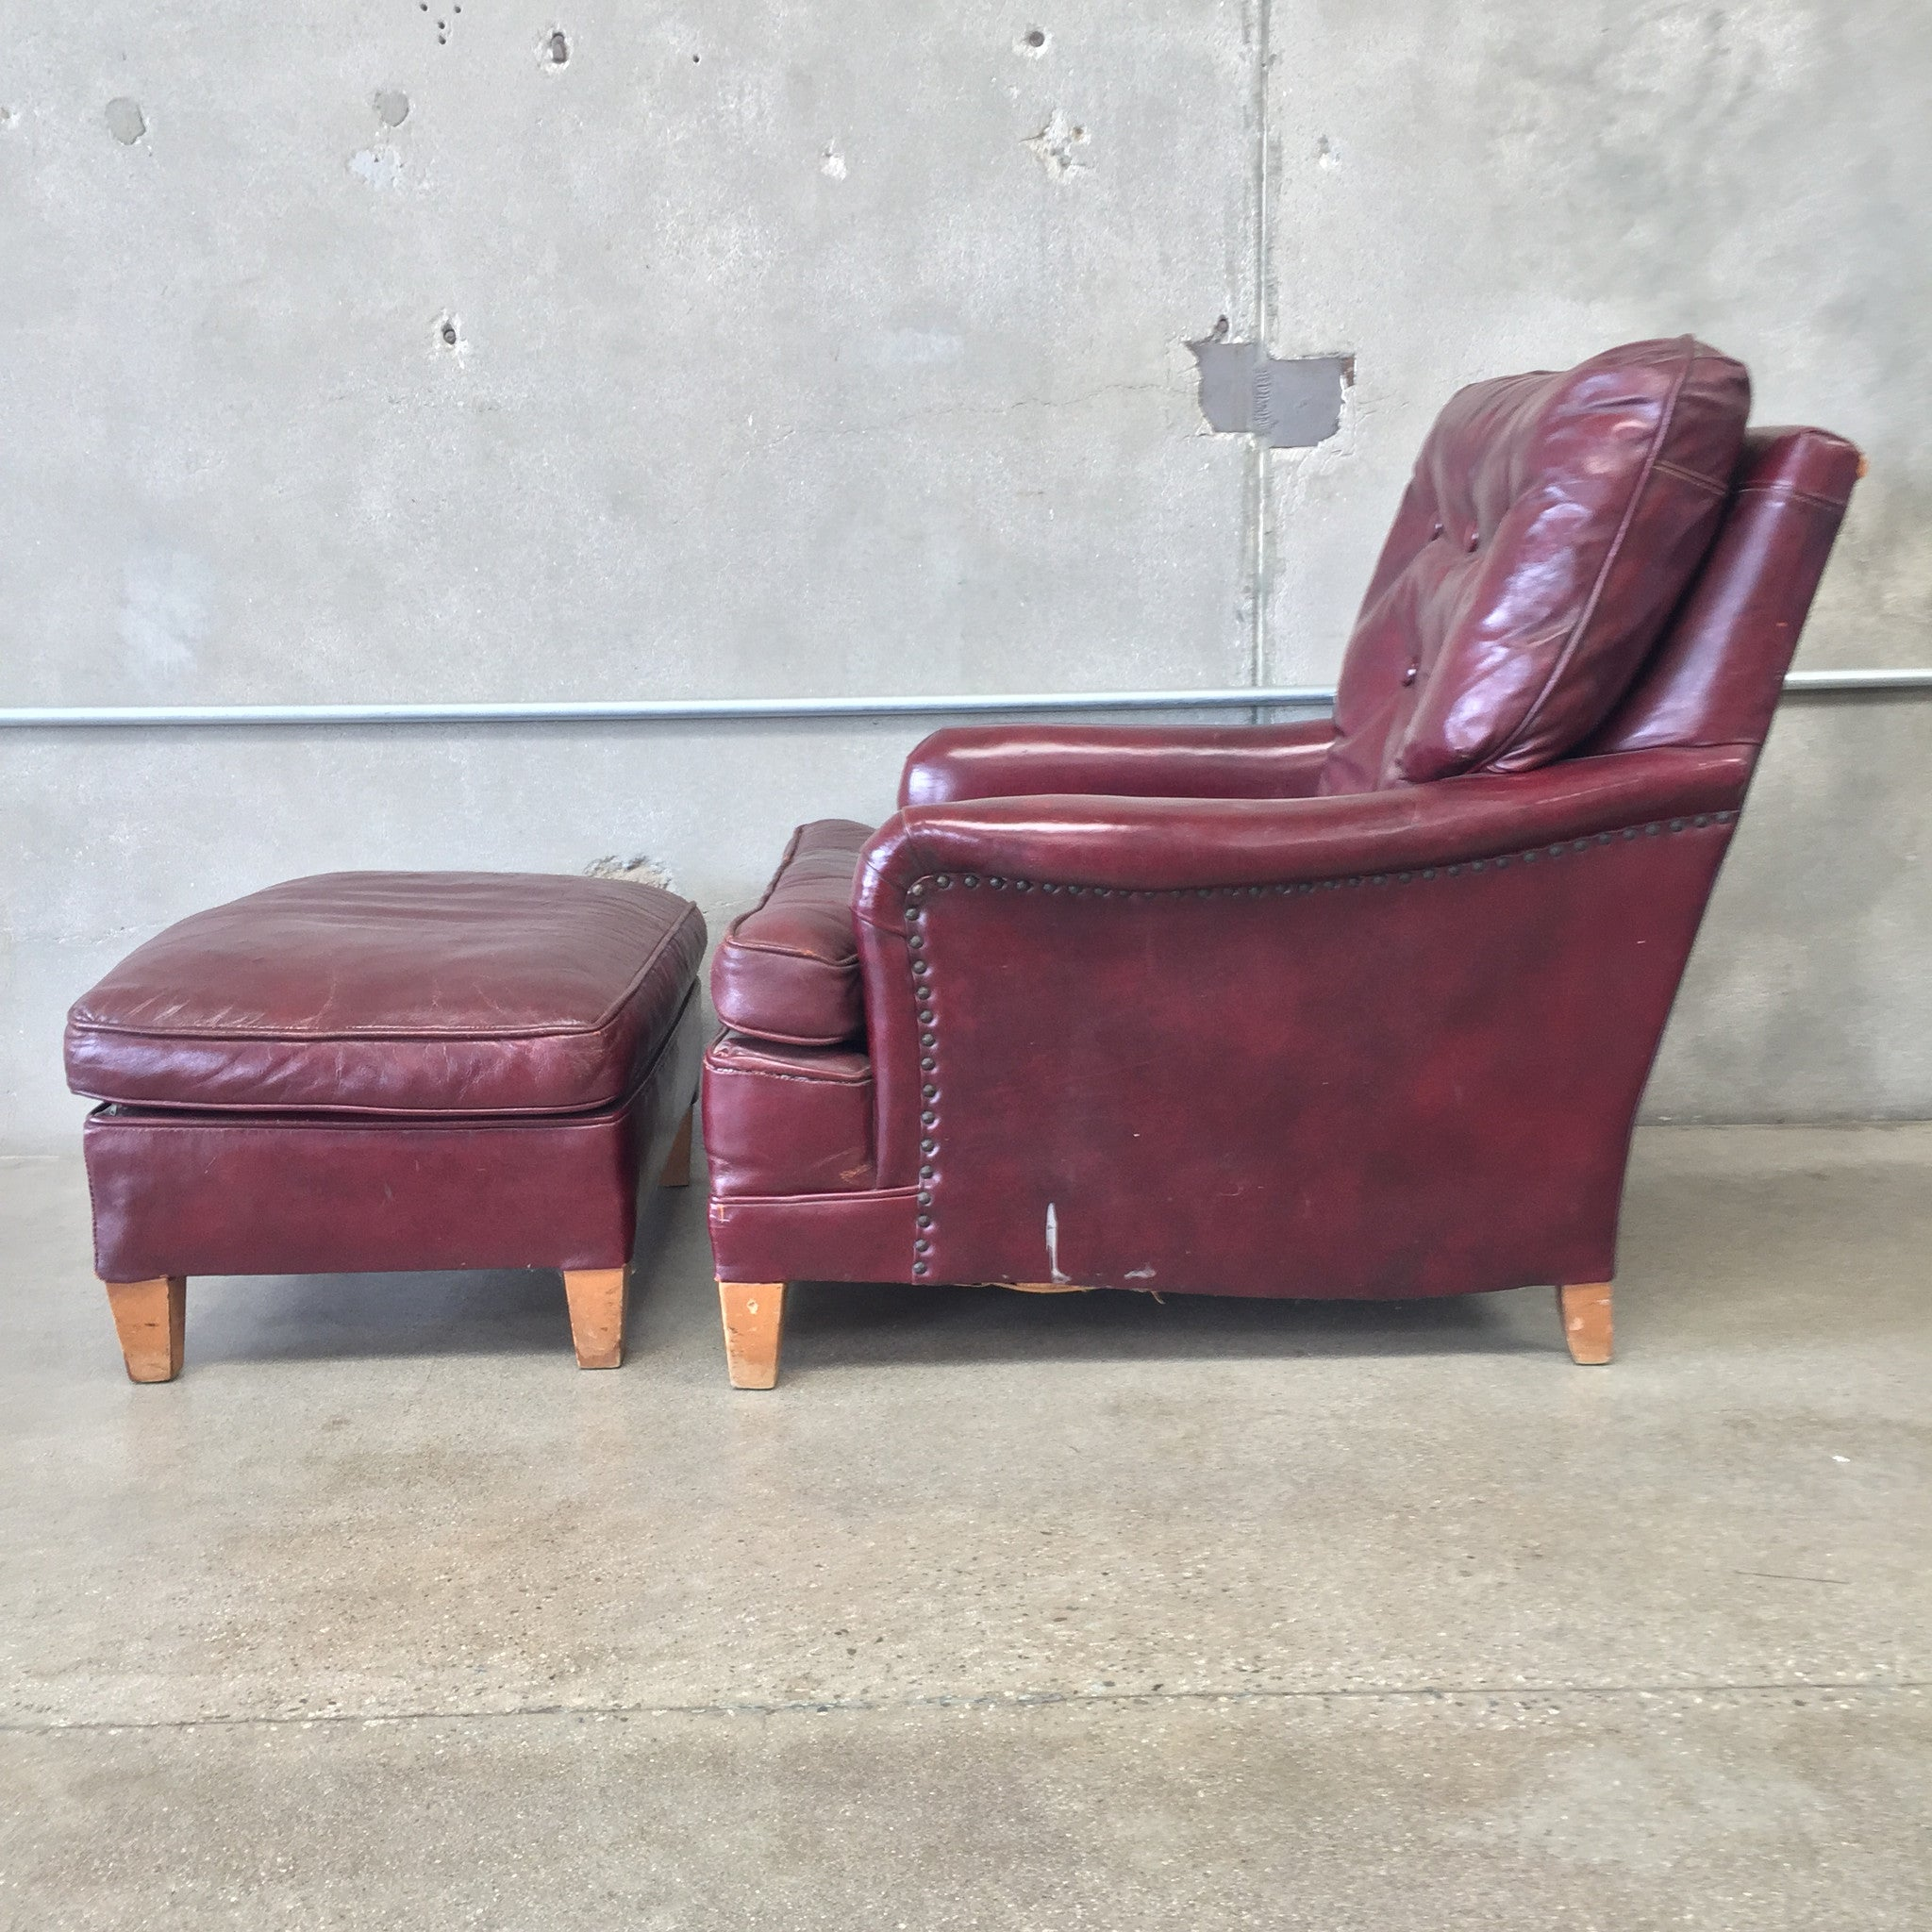 Oxblood Red Leather Club Chair and Ottoman – UrbanAmericana